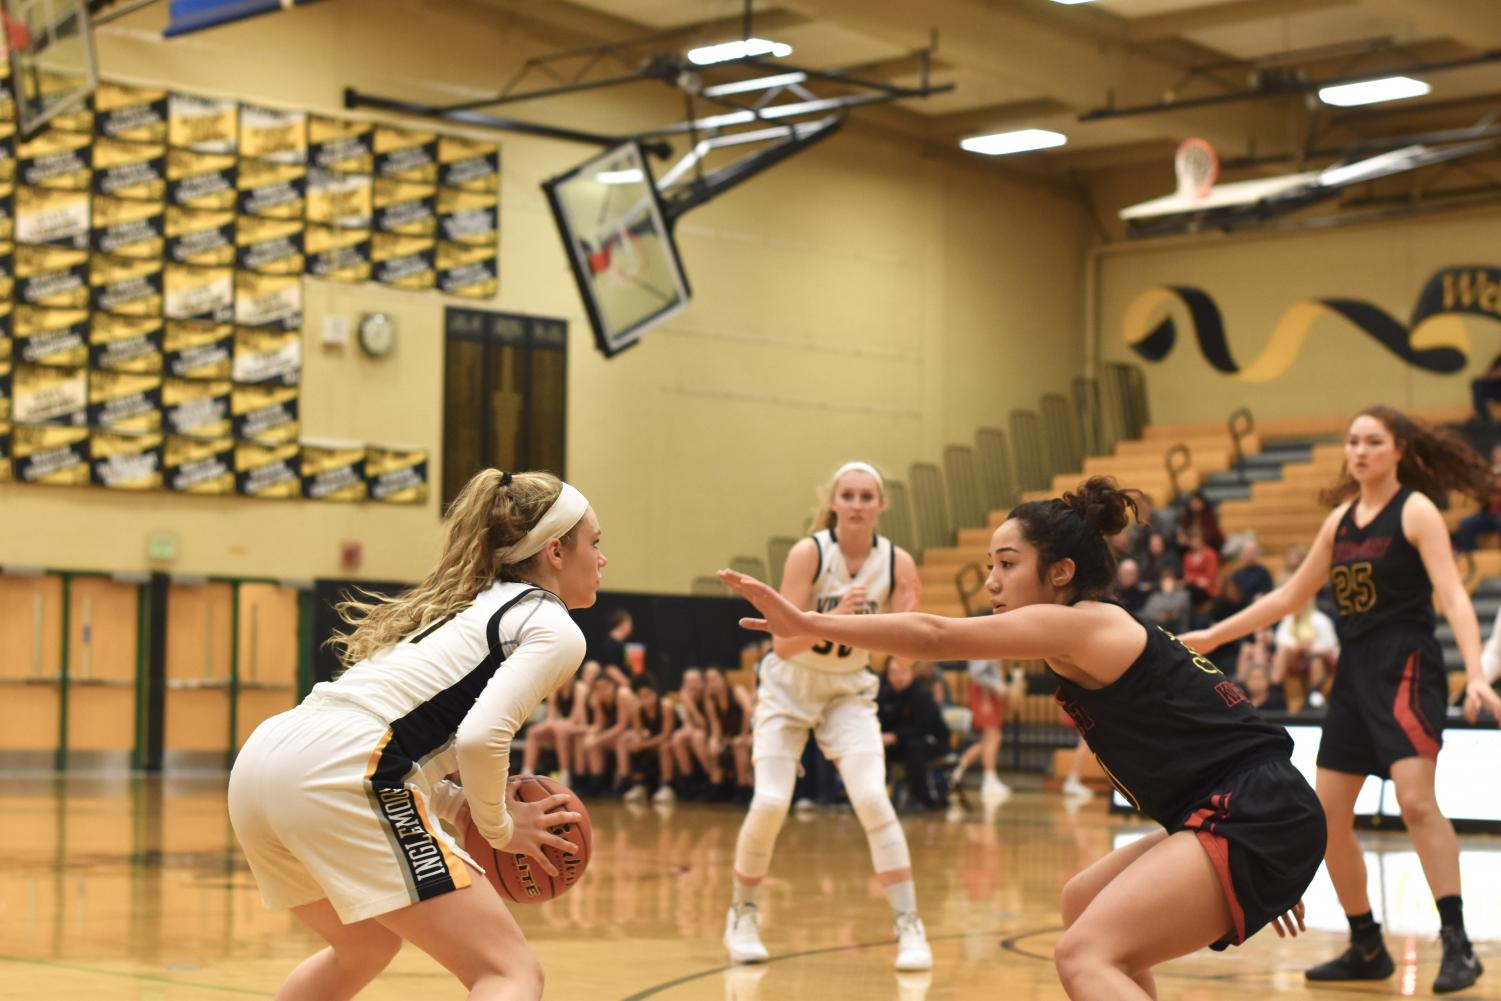 Junior Lucy Young faces a Newport defender as she scans the court for an open teammate. The team would go on to win with a score of 57-48.